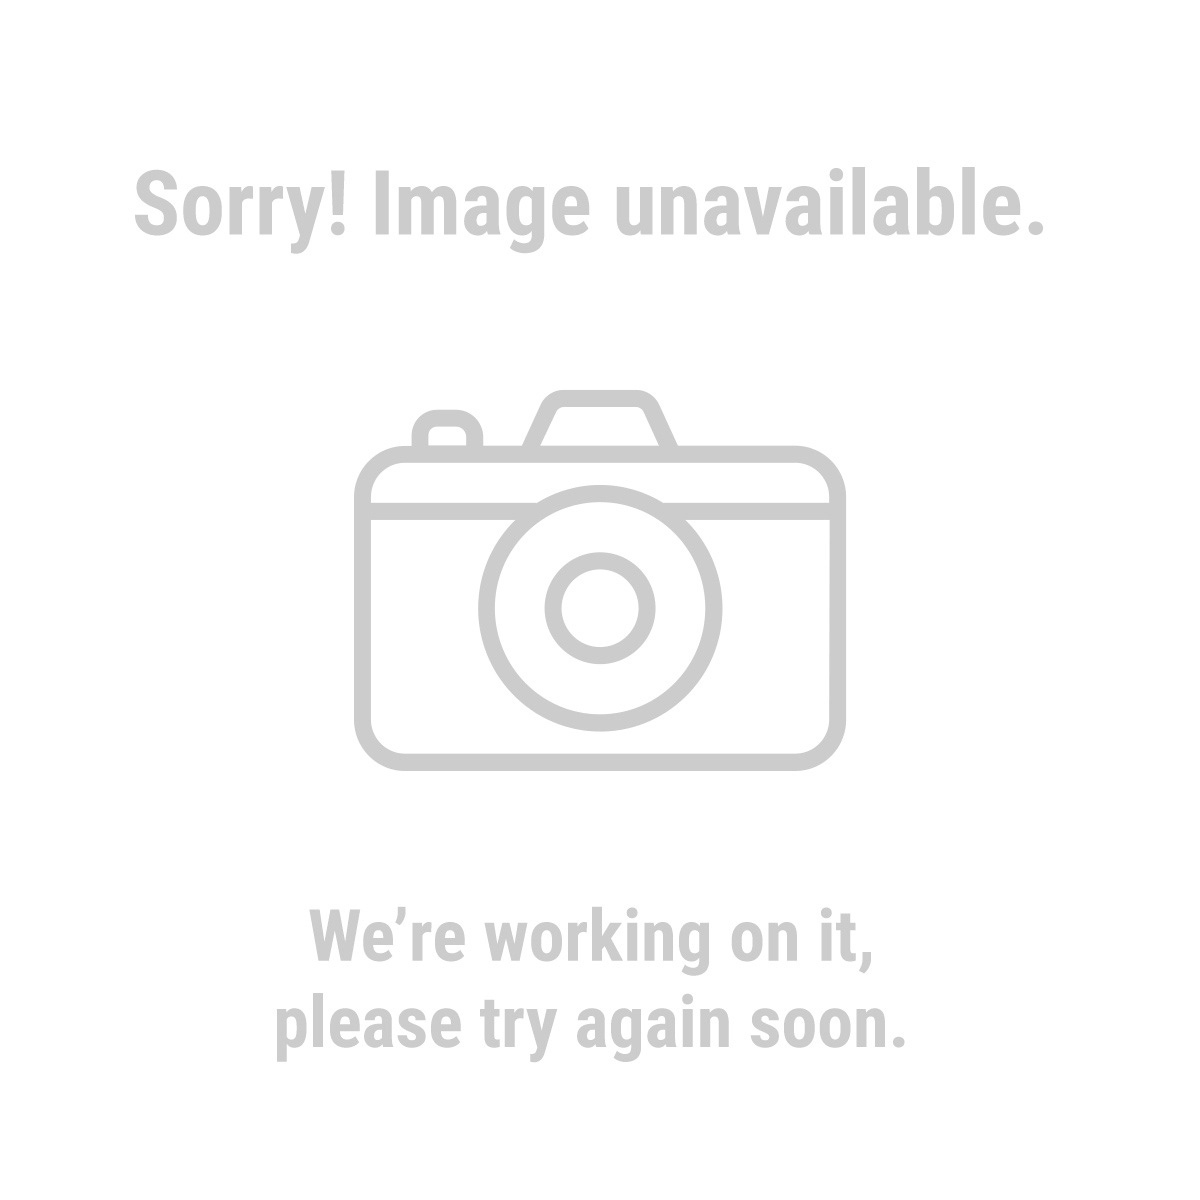 Storehouse 67578 40 Piece Hose Clamp Assortment